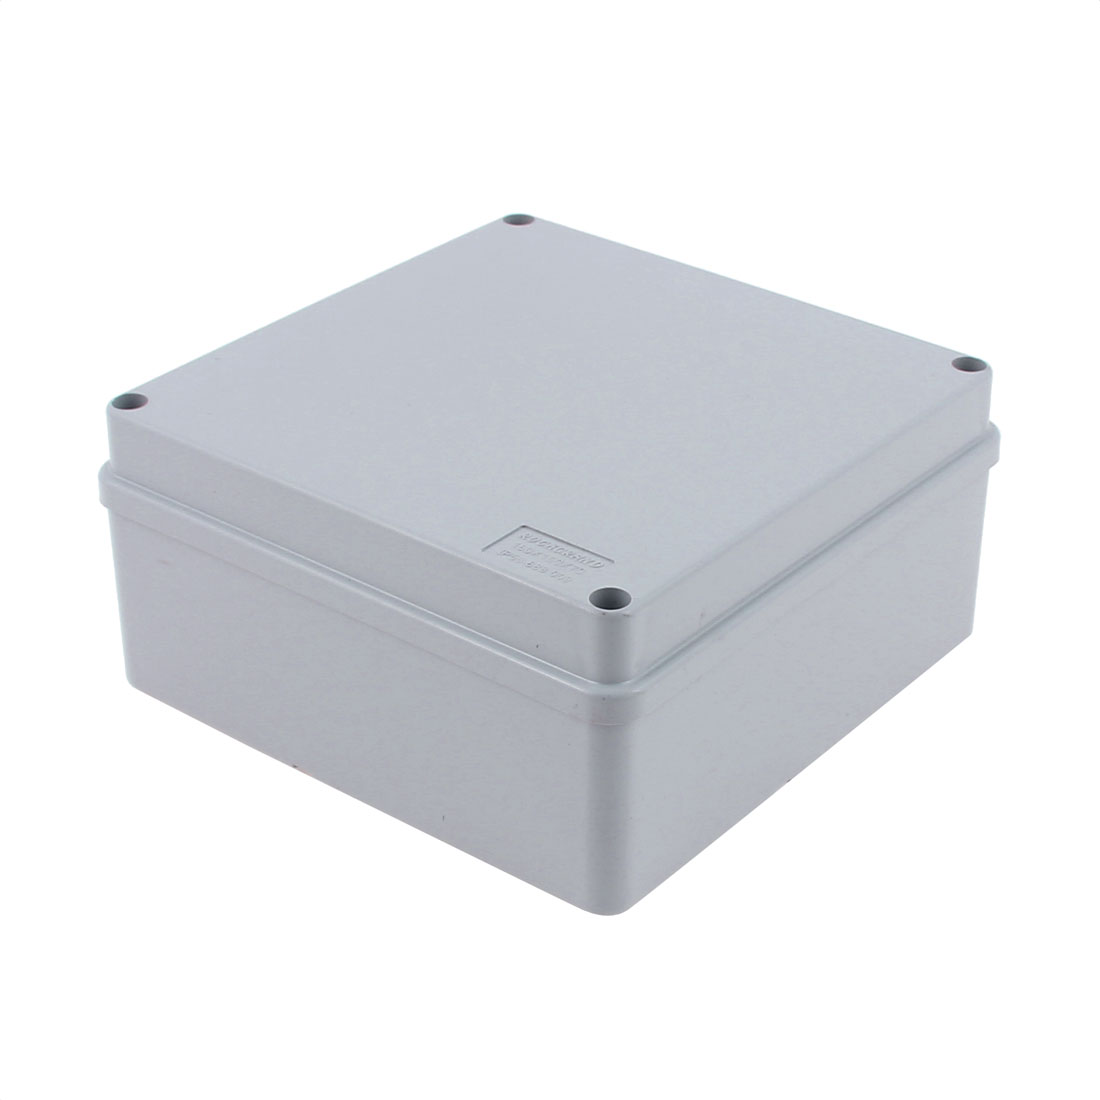 150 x 150 x 75mm Dustproof IP65 Junction Box DIY Terminal Connecting Box Enclosure